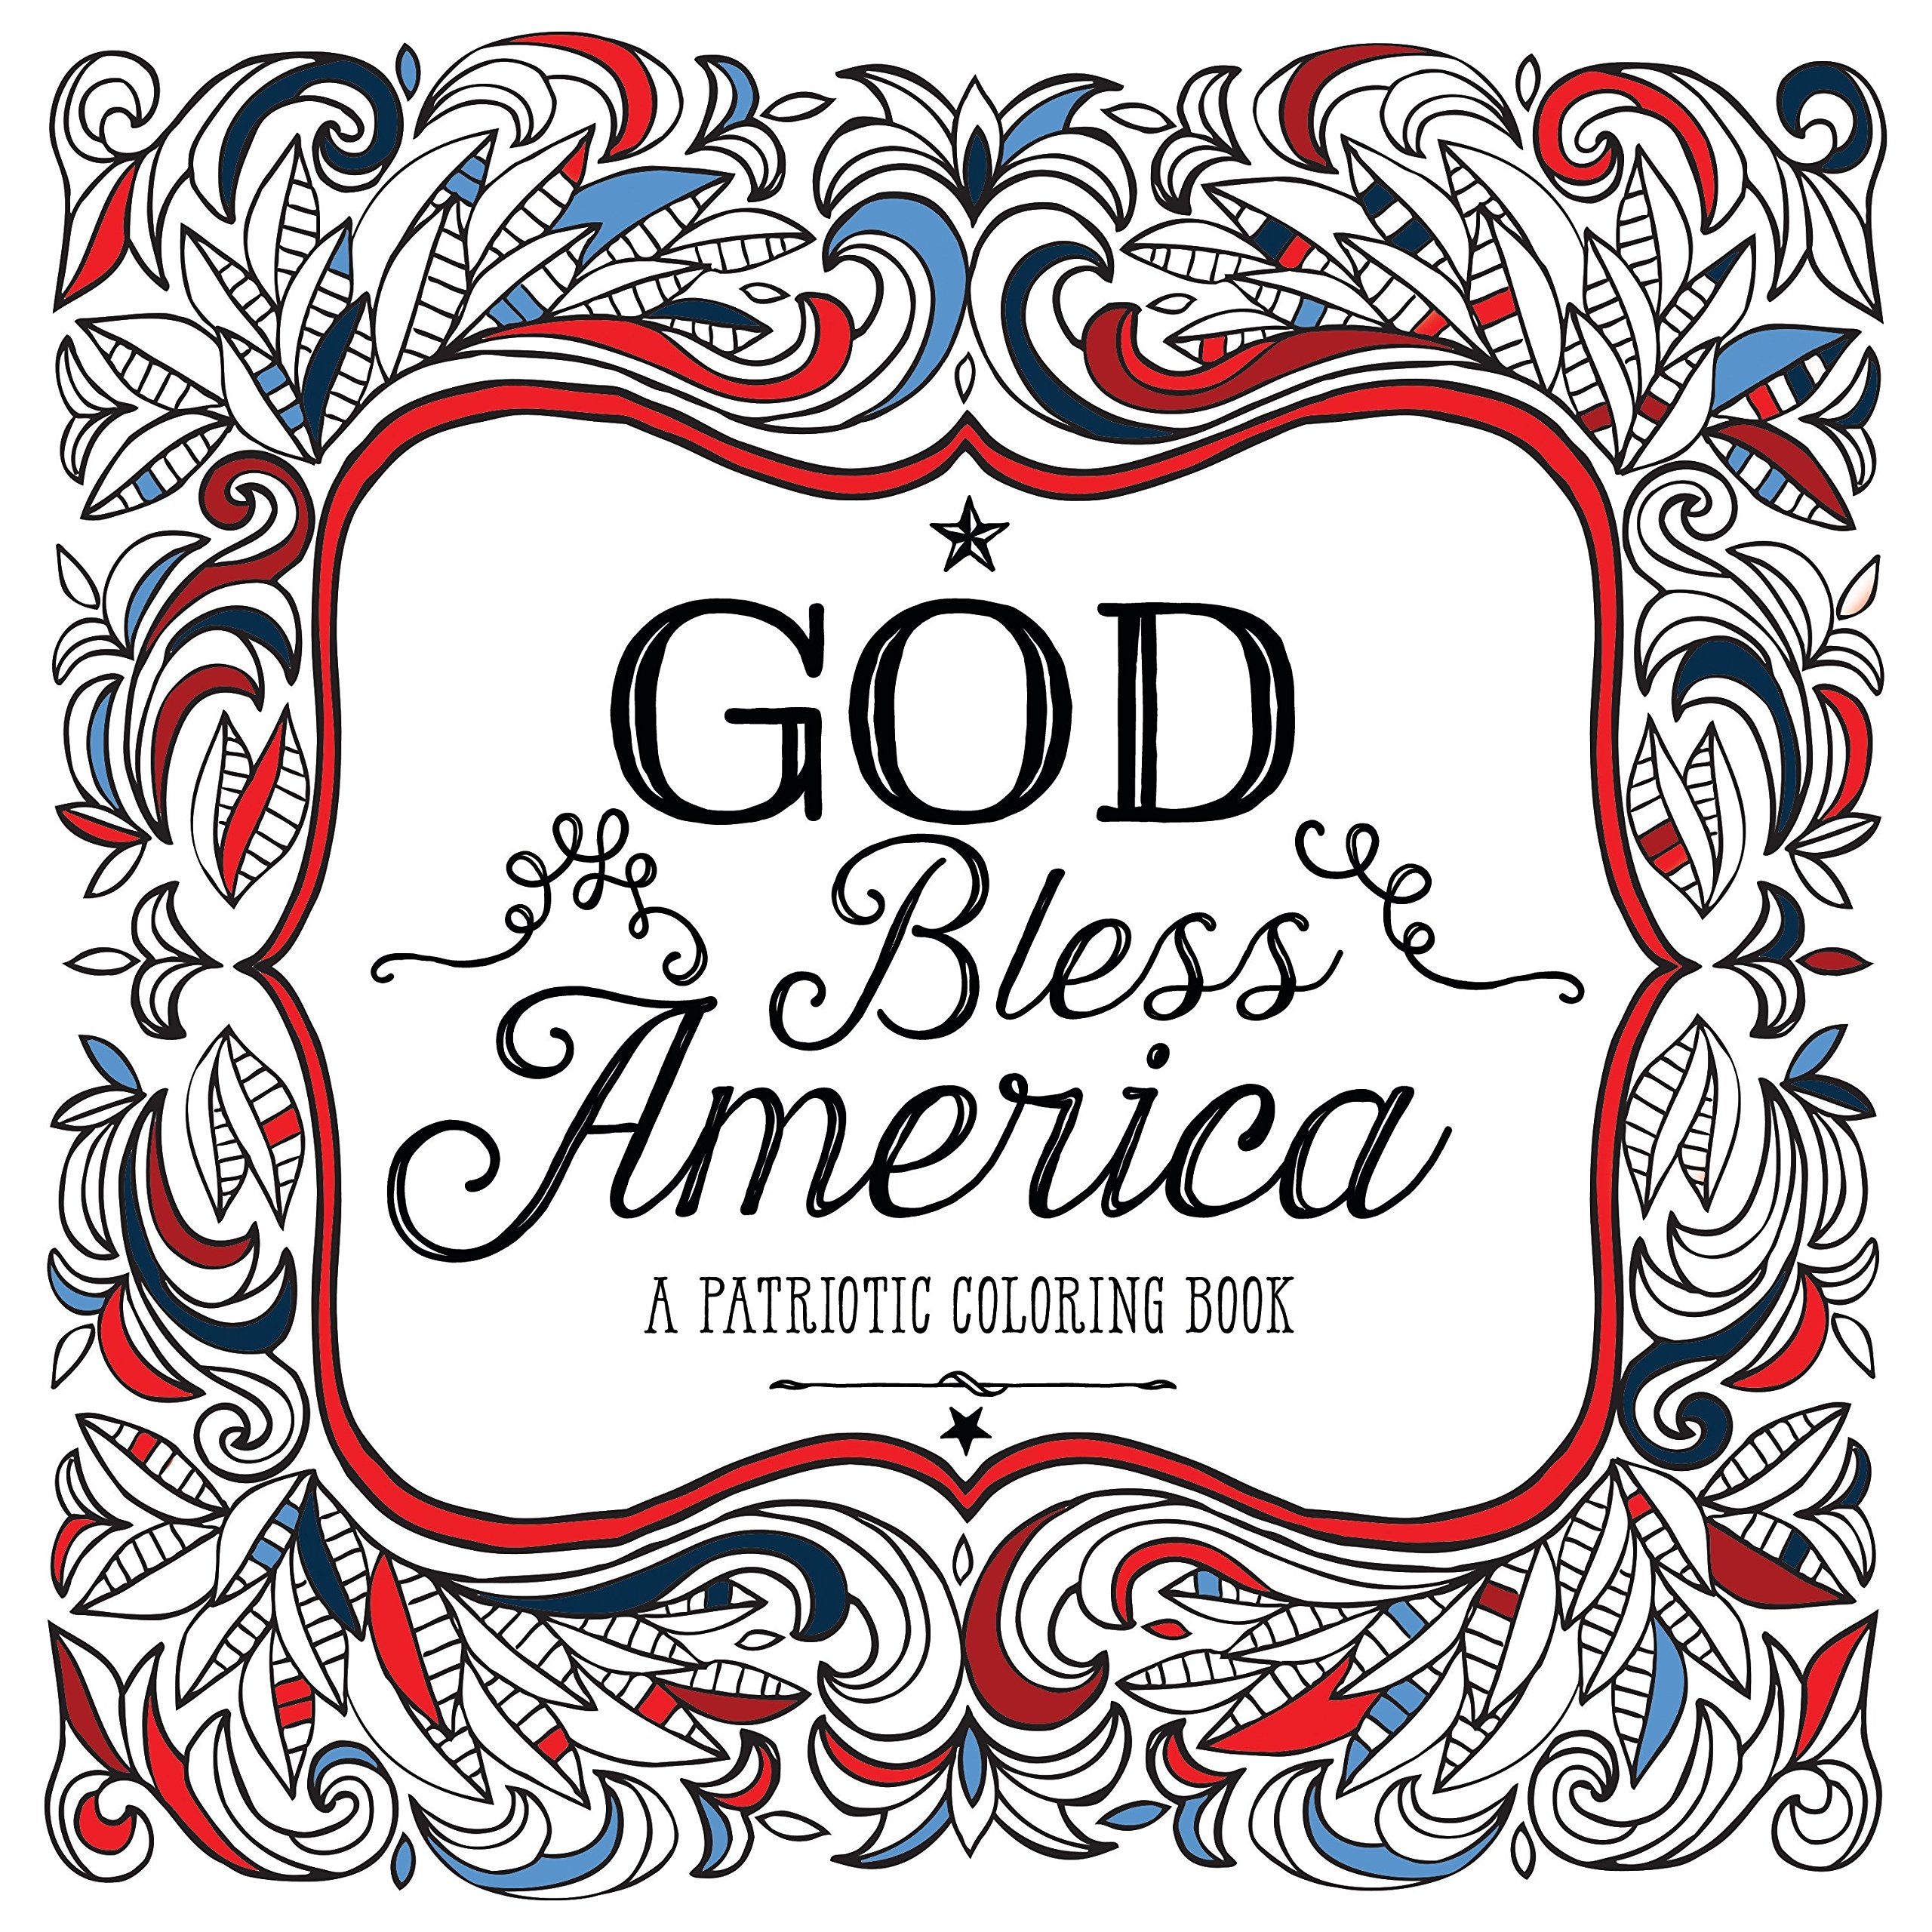 Amazon.com: God Bless America: A Patriotic Coloring Book ...